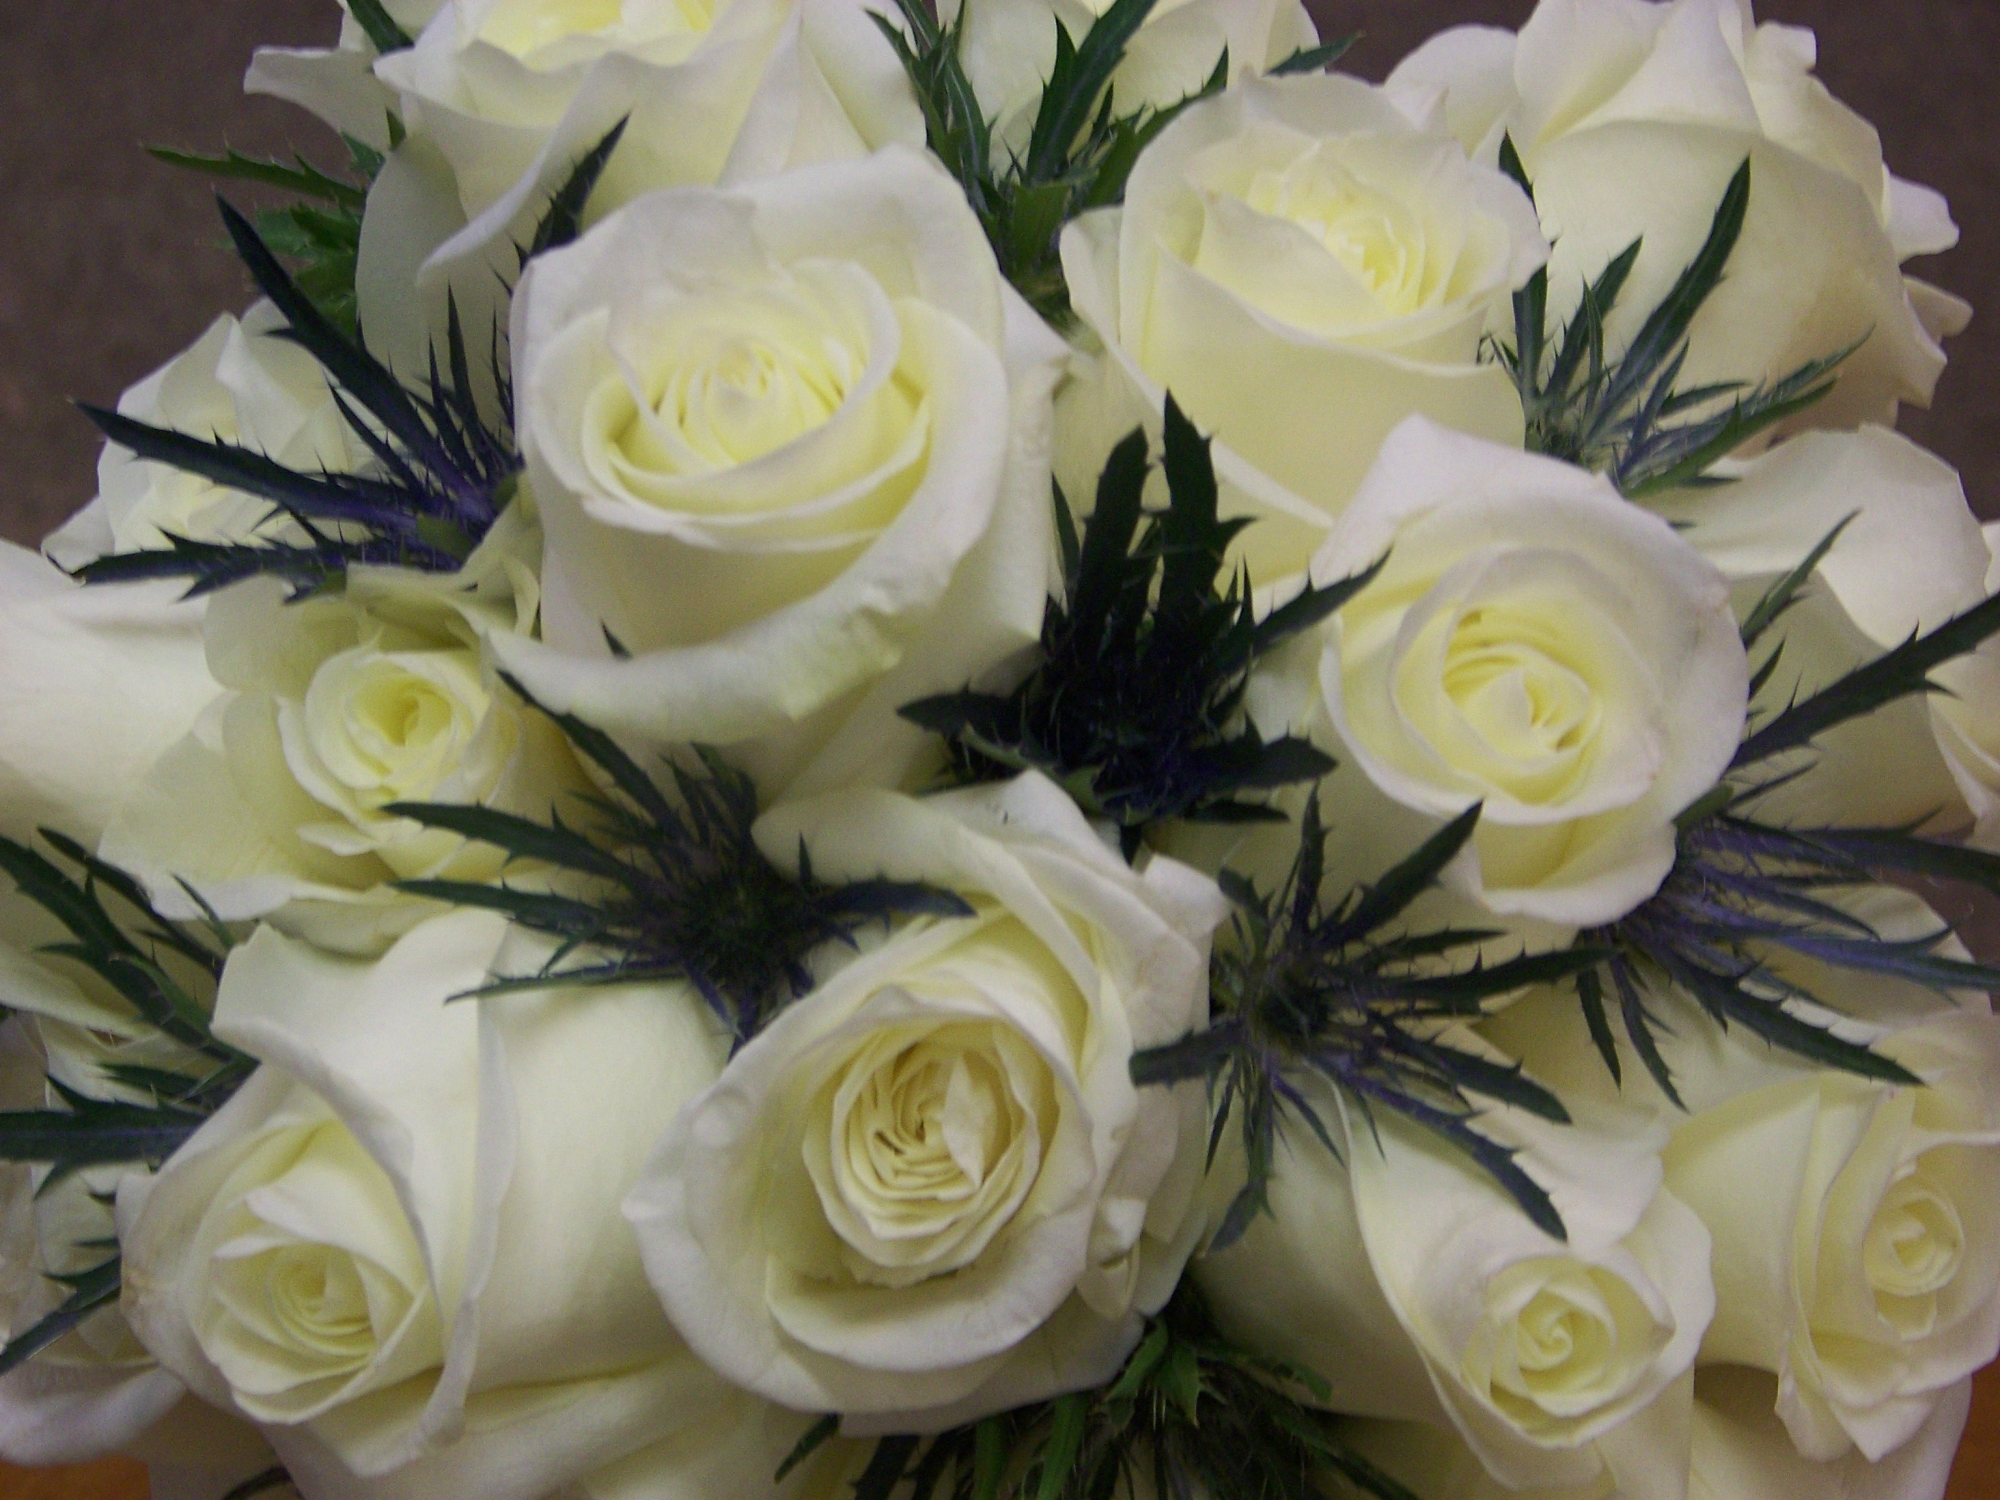 Arrangement of Rose and Thistle